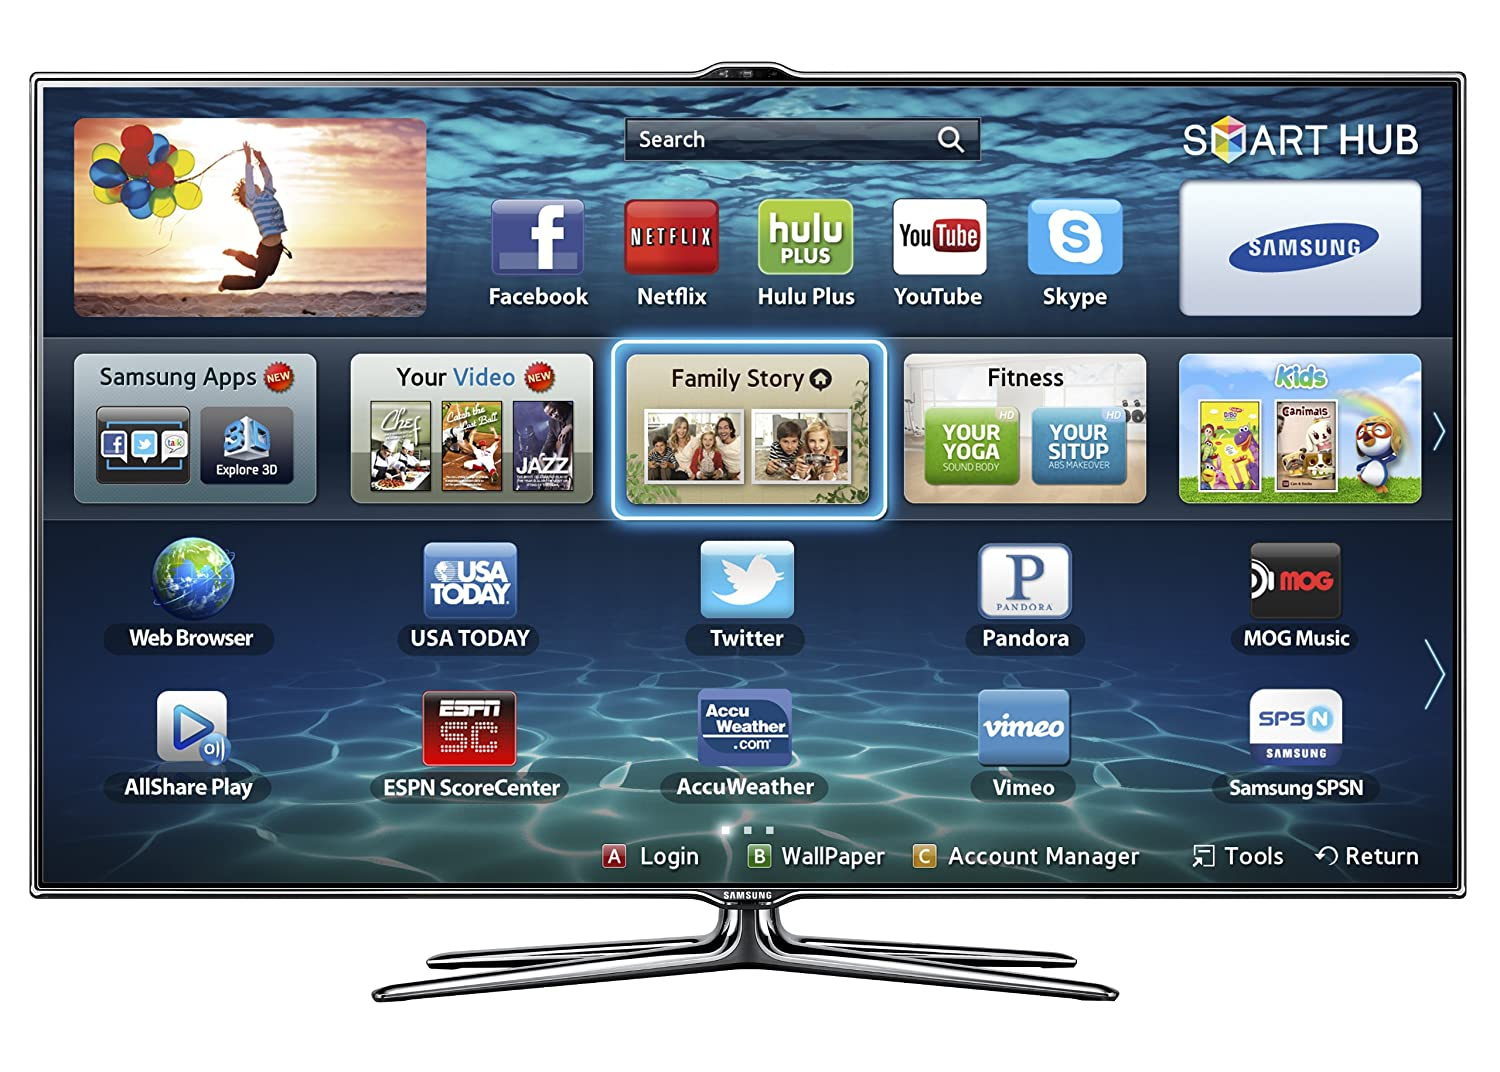 samsung 55 inch smart tv. amazon.com: samsung un55es7500 55-inch 1080p 240hz 3d slim led hdtv (black) (2012 model): electronics 55 inch smart tv